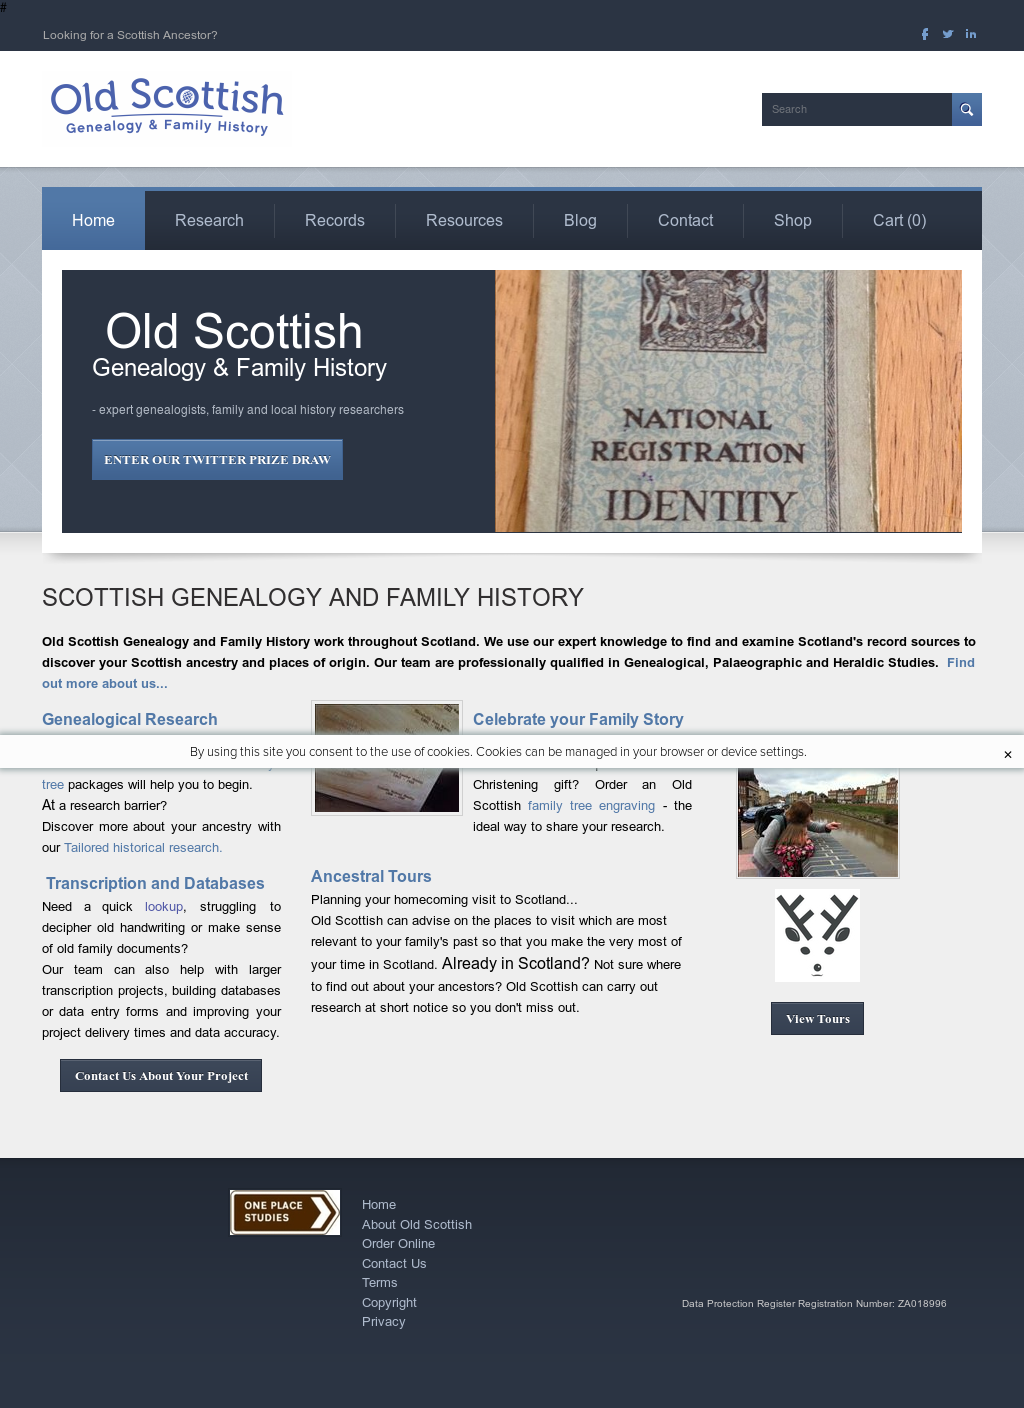 Old Scottish Genealogy And Family History Competitors